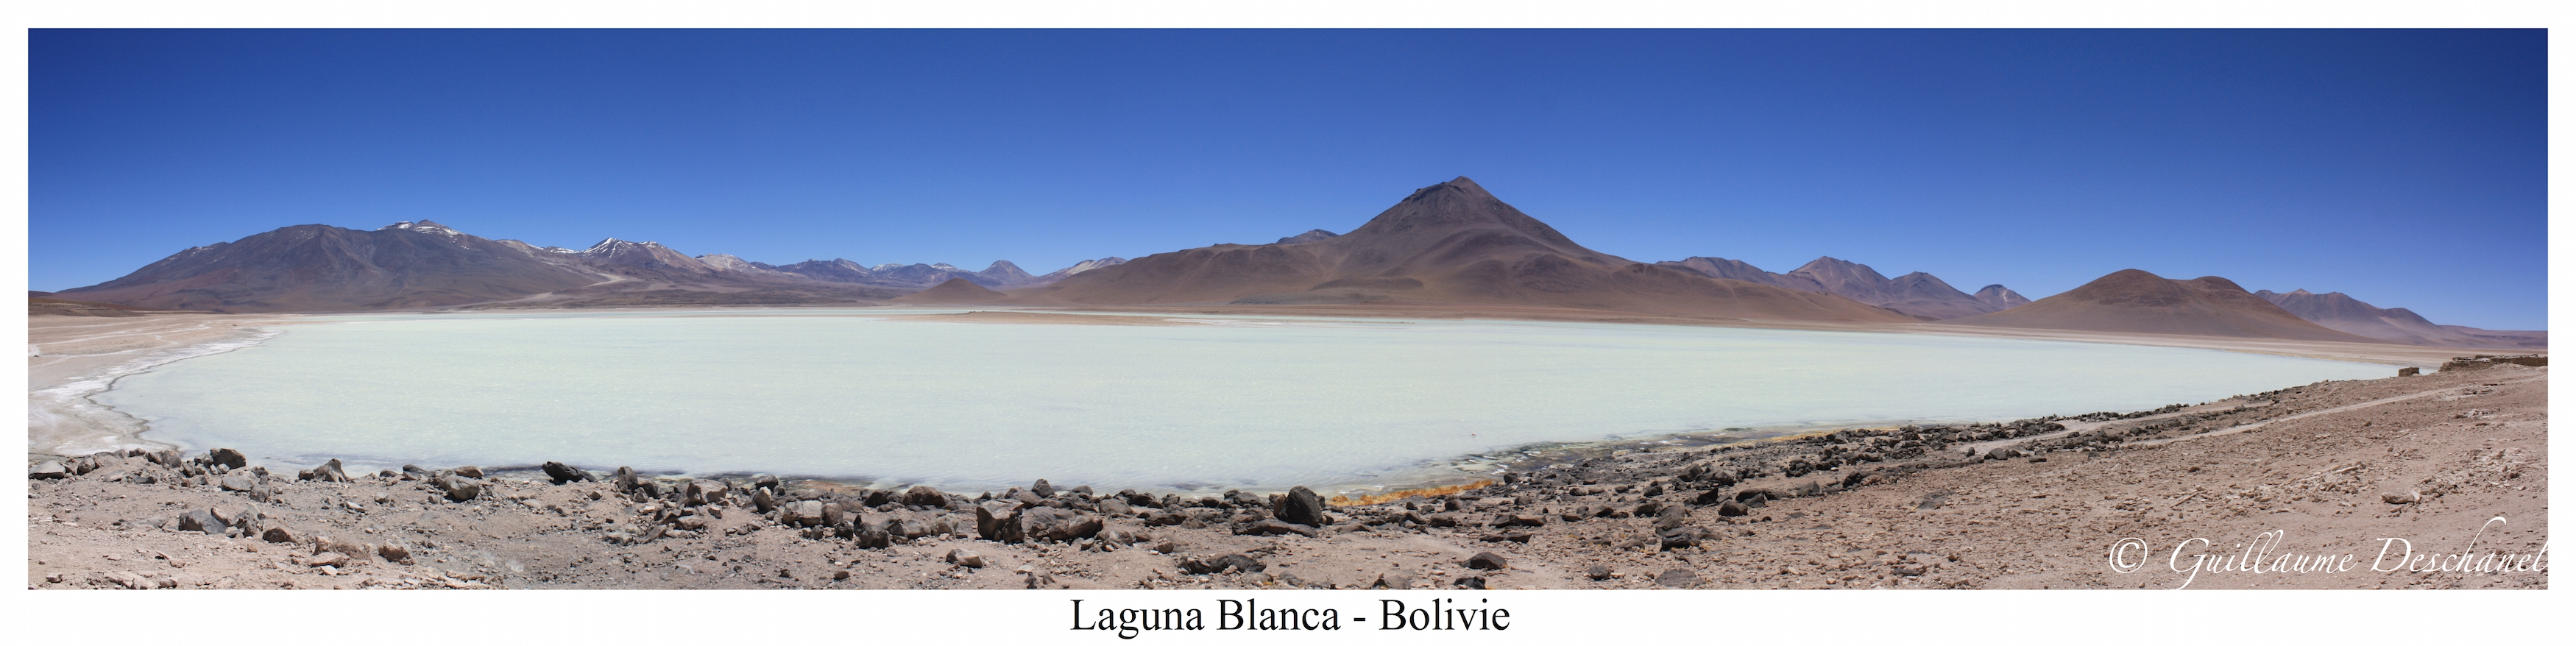 Panoramique 5 - Laguna Blanca - Bolivie - copie